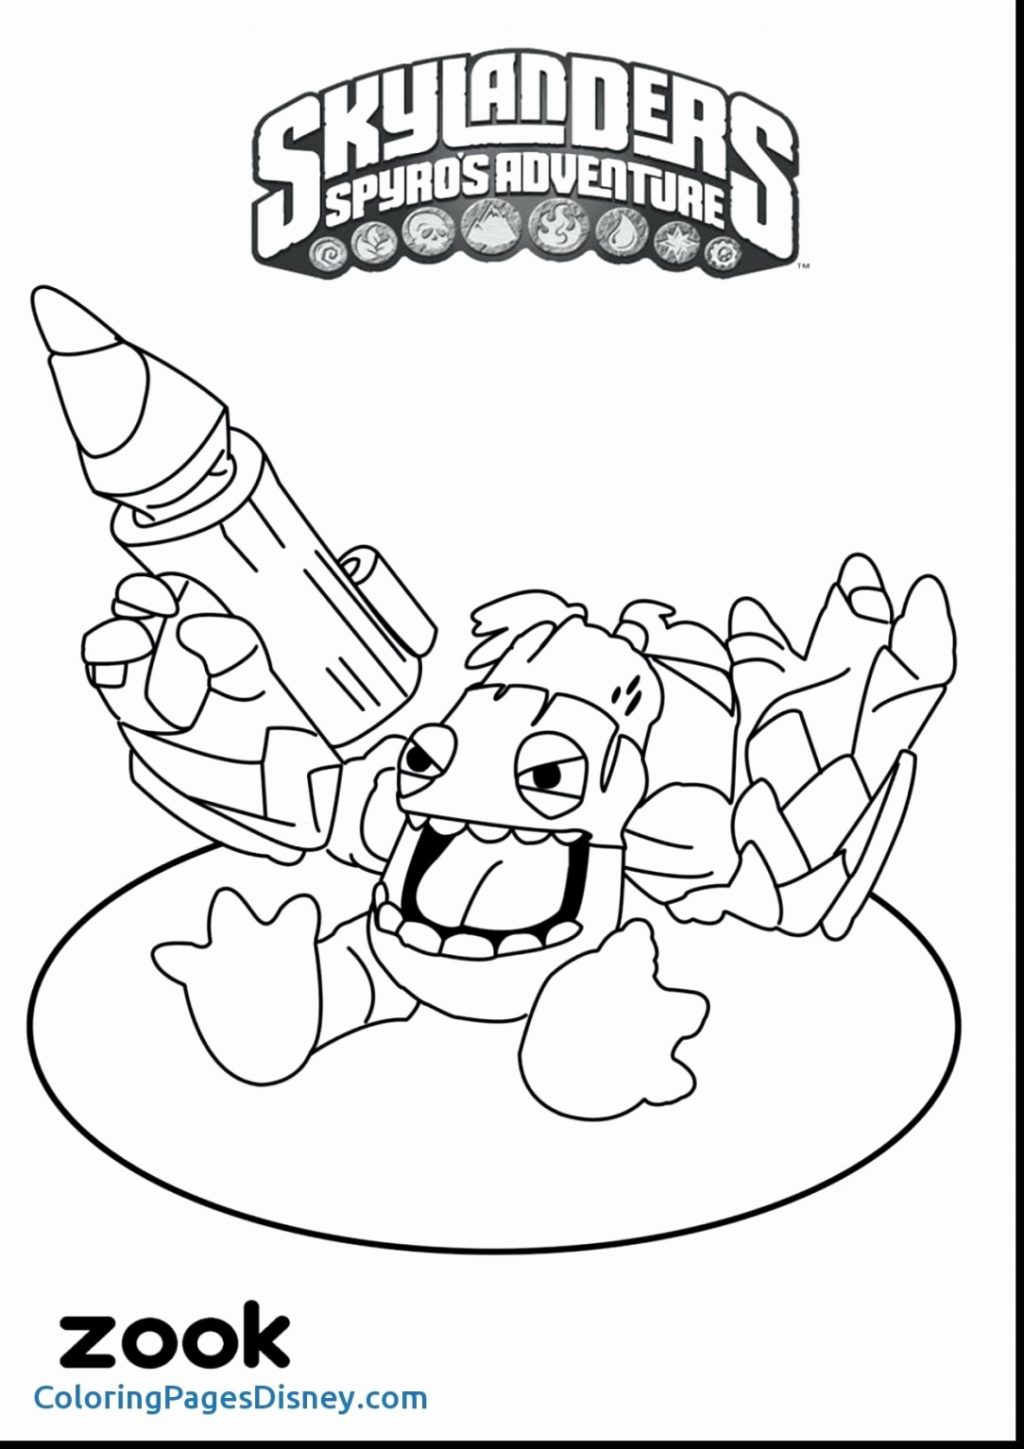 Coloring Pages ~ Sonic The Hedgehog Coloring Book Awesome Pages